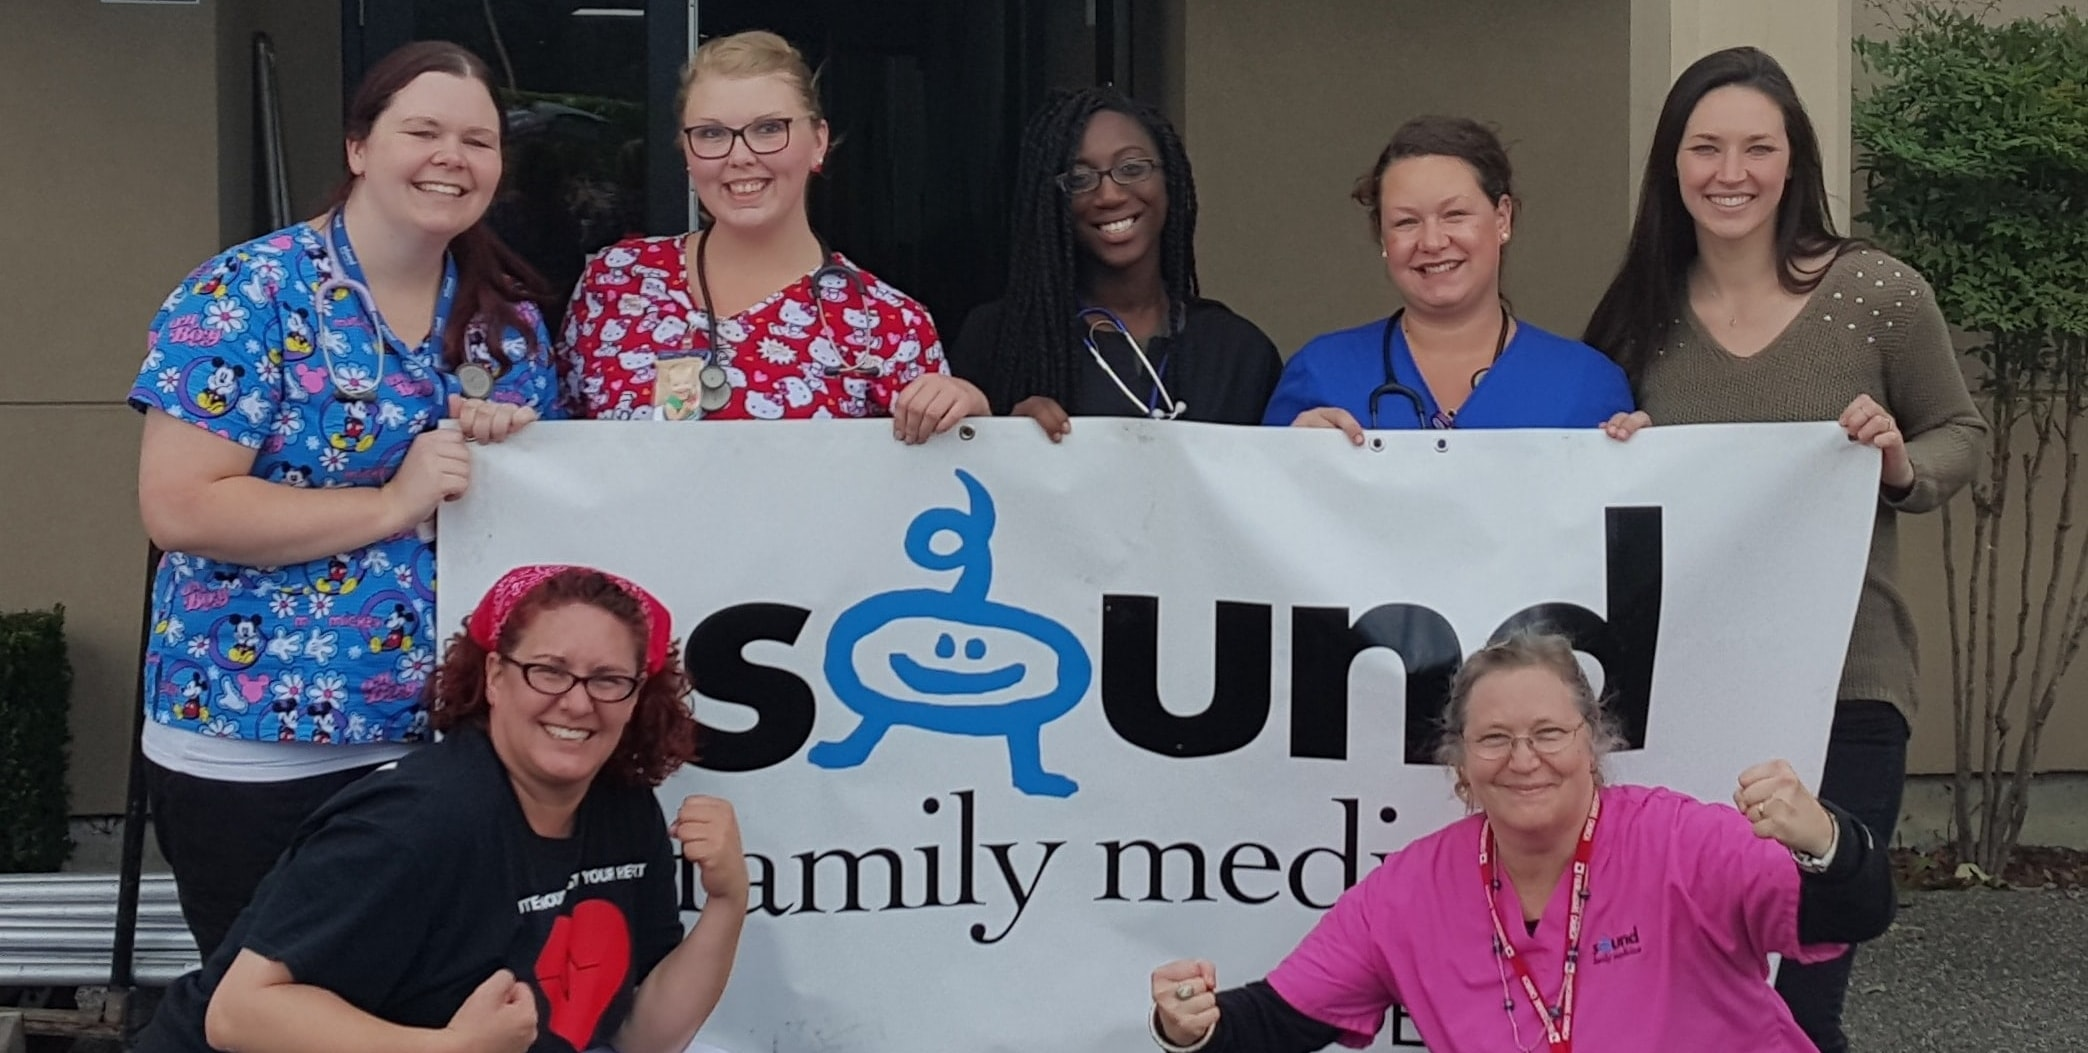 Sound Family Medicine staff holding banner at Puyallup community event